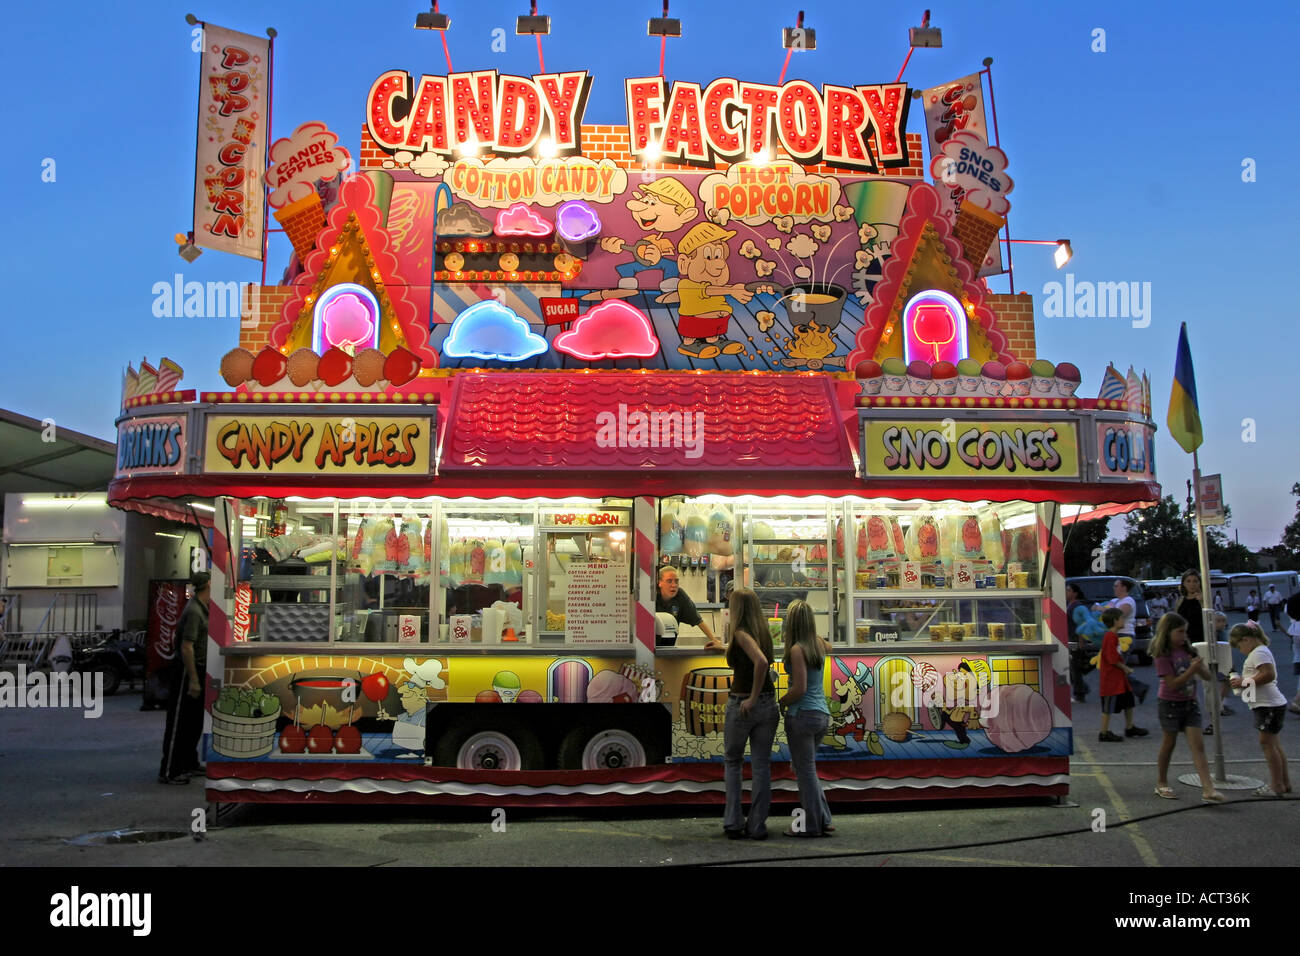 """Two women buy something at the """"Candy Factory"""", a food stand at the Stock Photo: 13222458 - Alamy"""